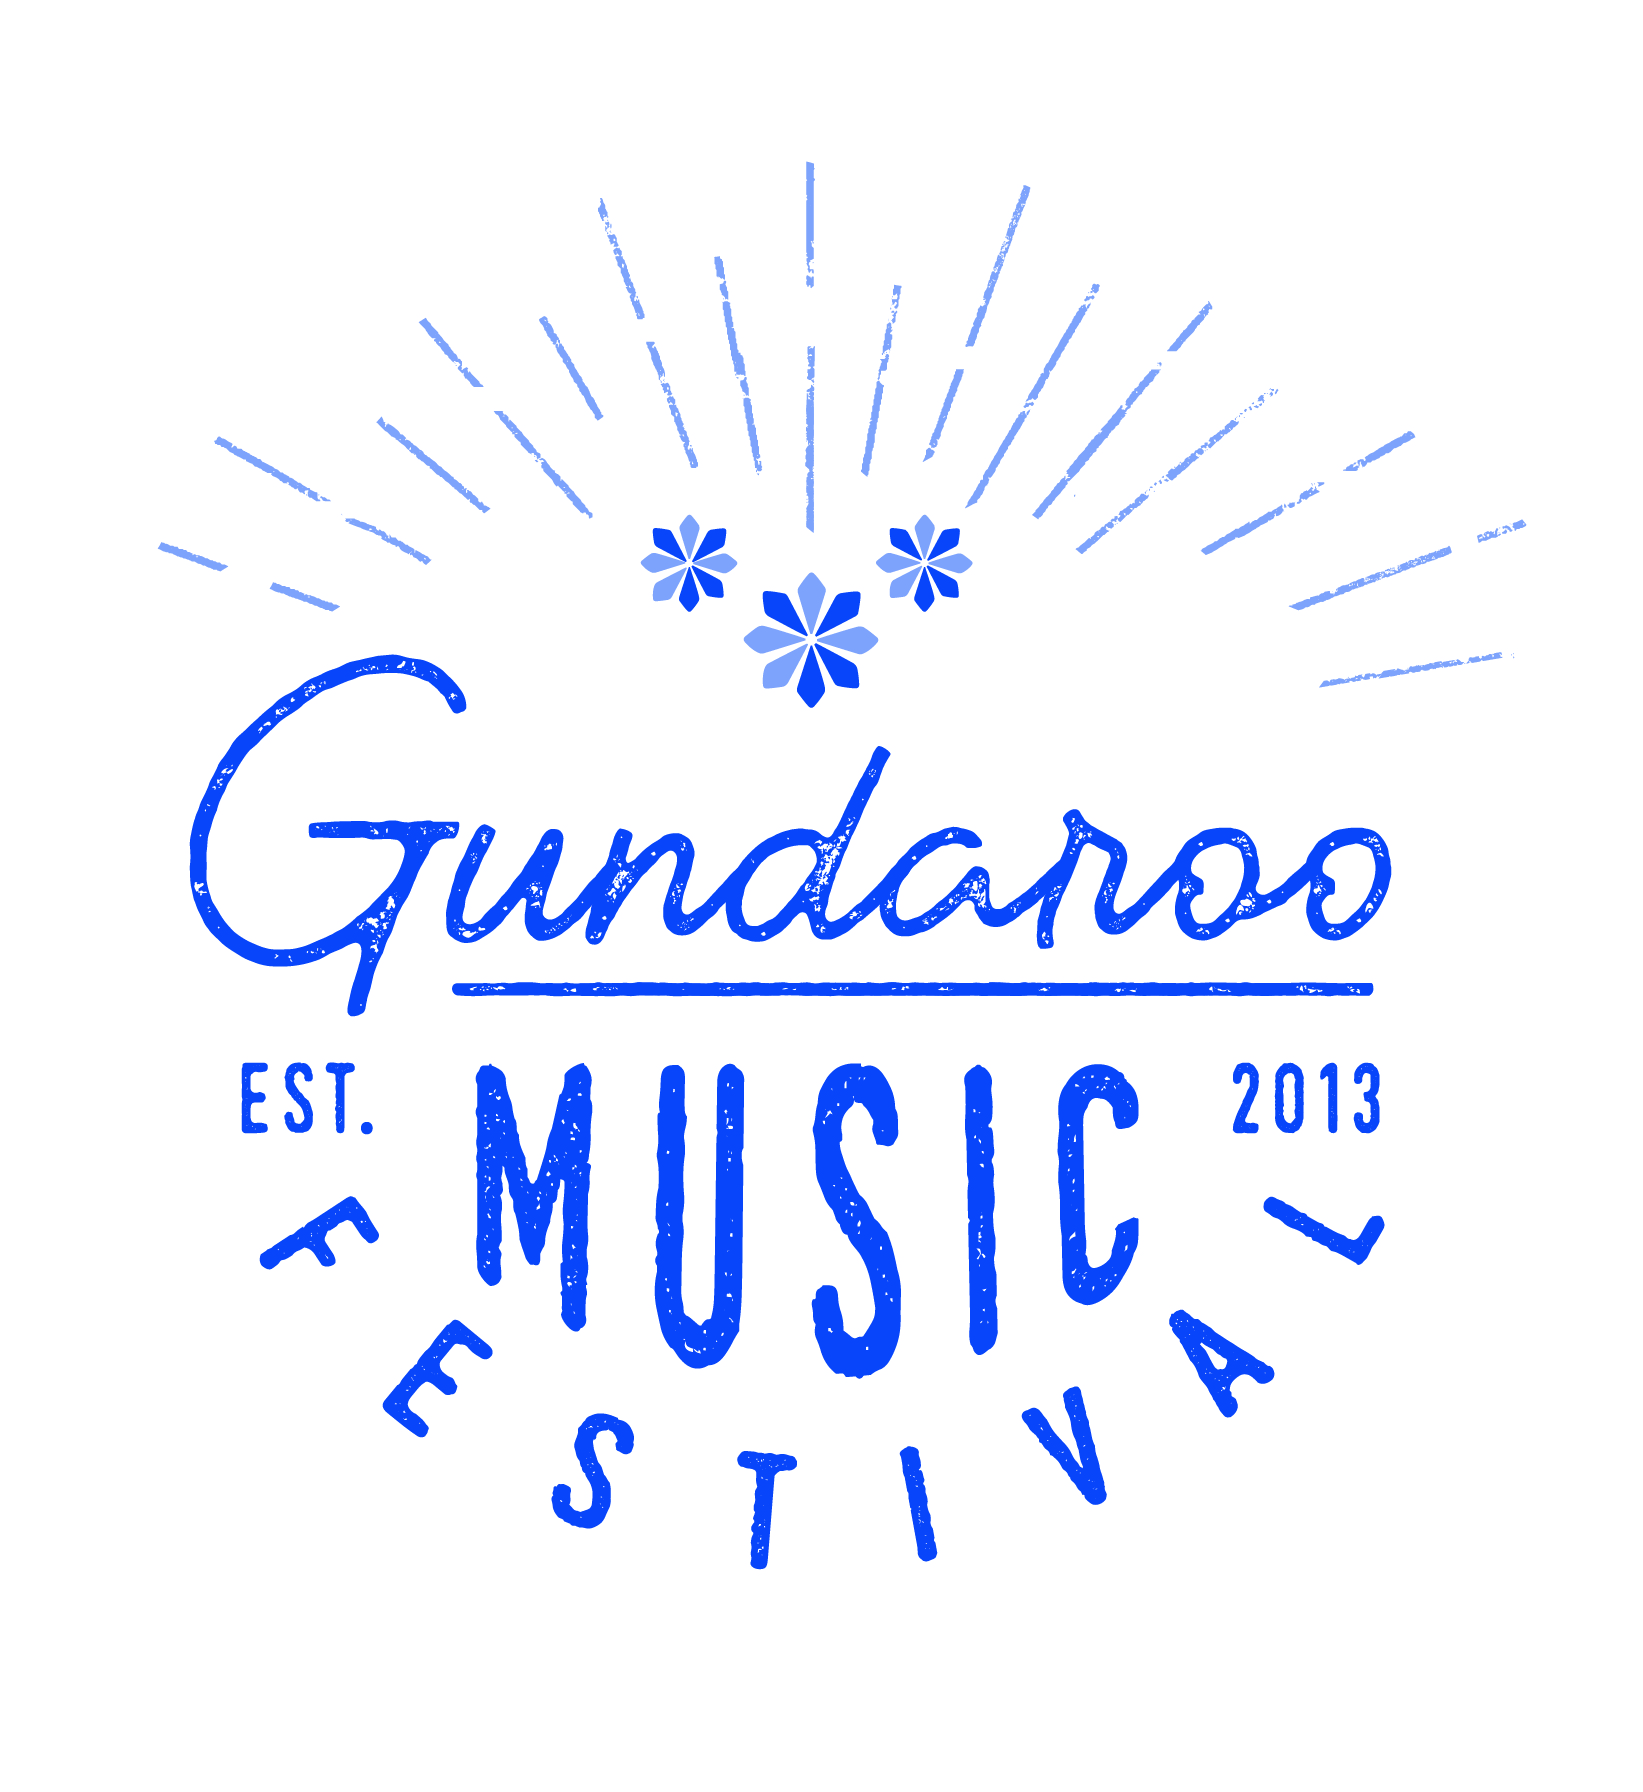 Sue Windsor – importance of the Gundaroo Music Festival